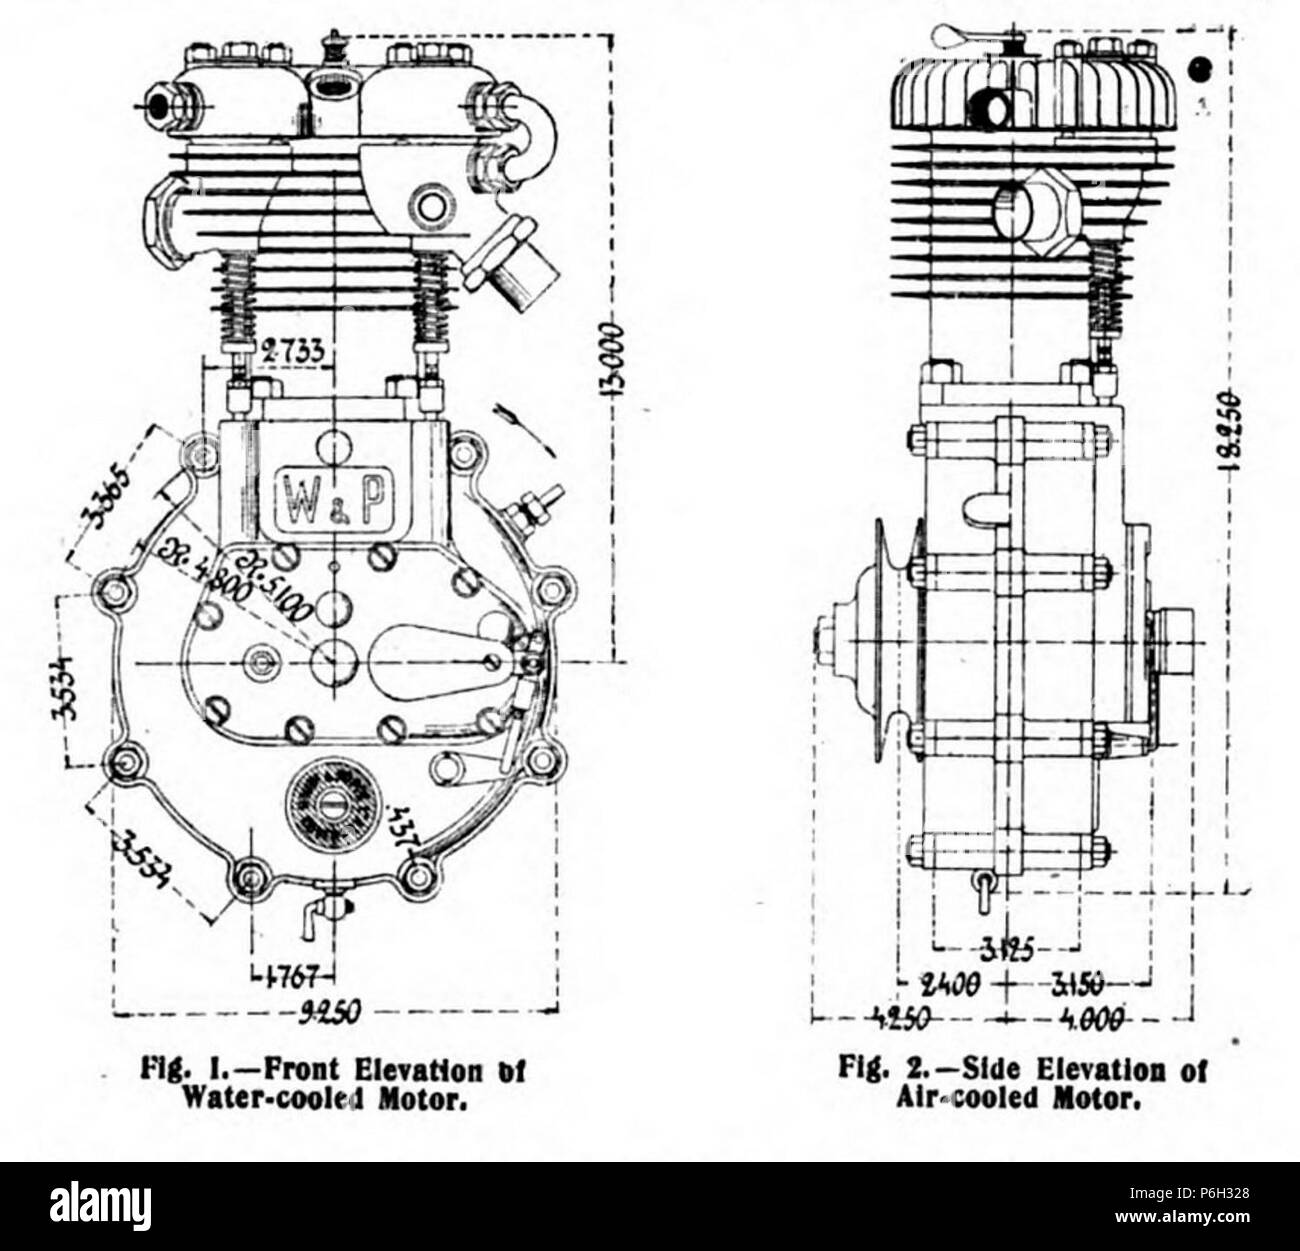 hight resolution of 1904 white poppe motorcycle engine elevations